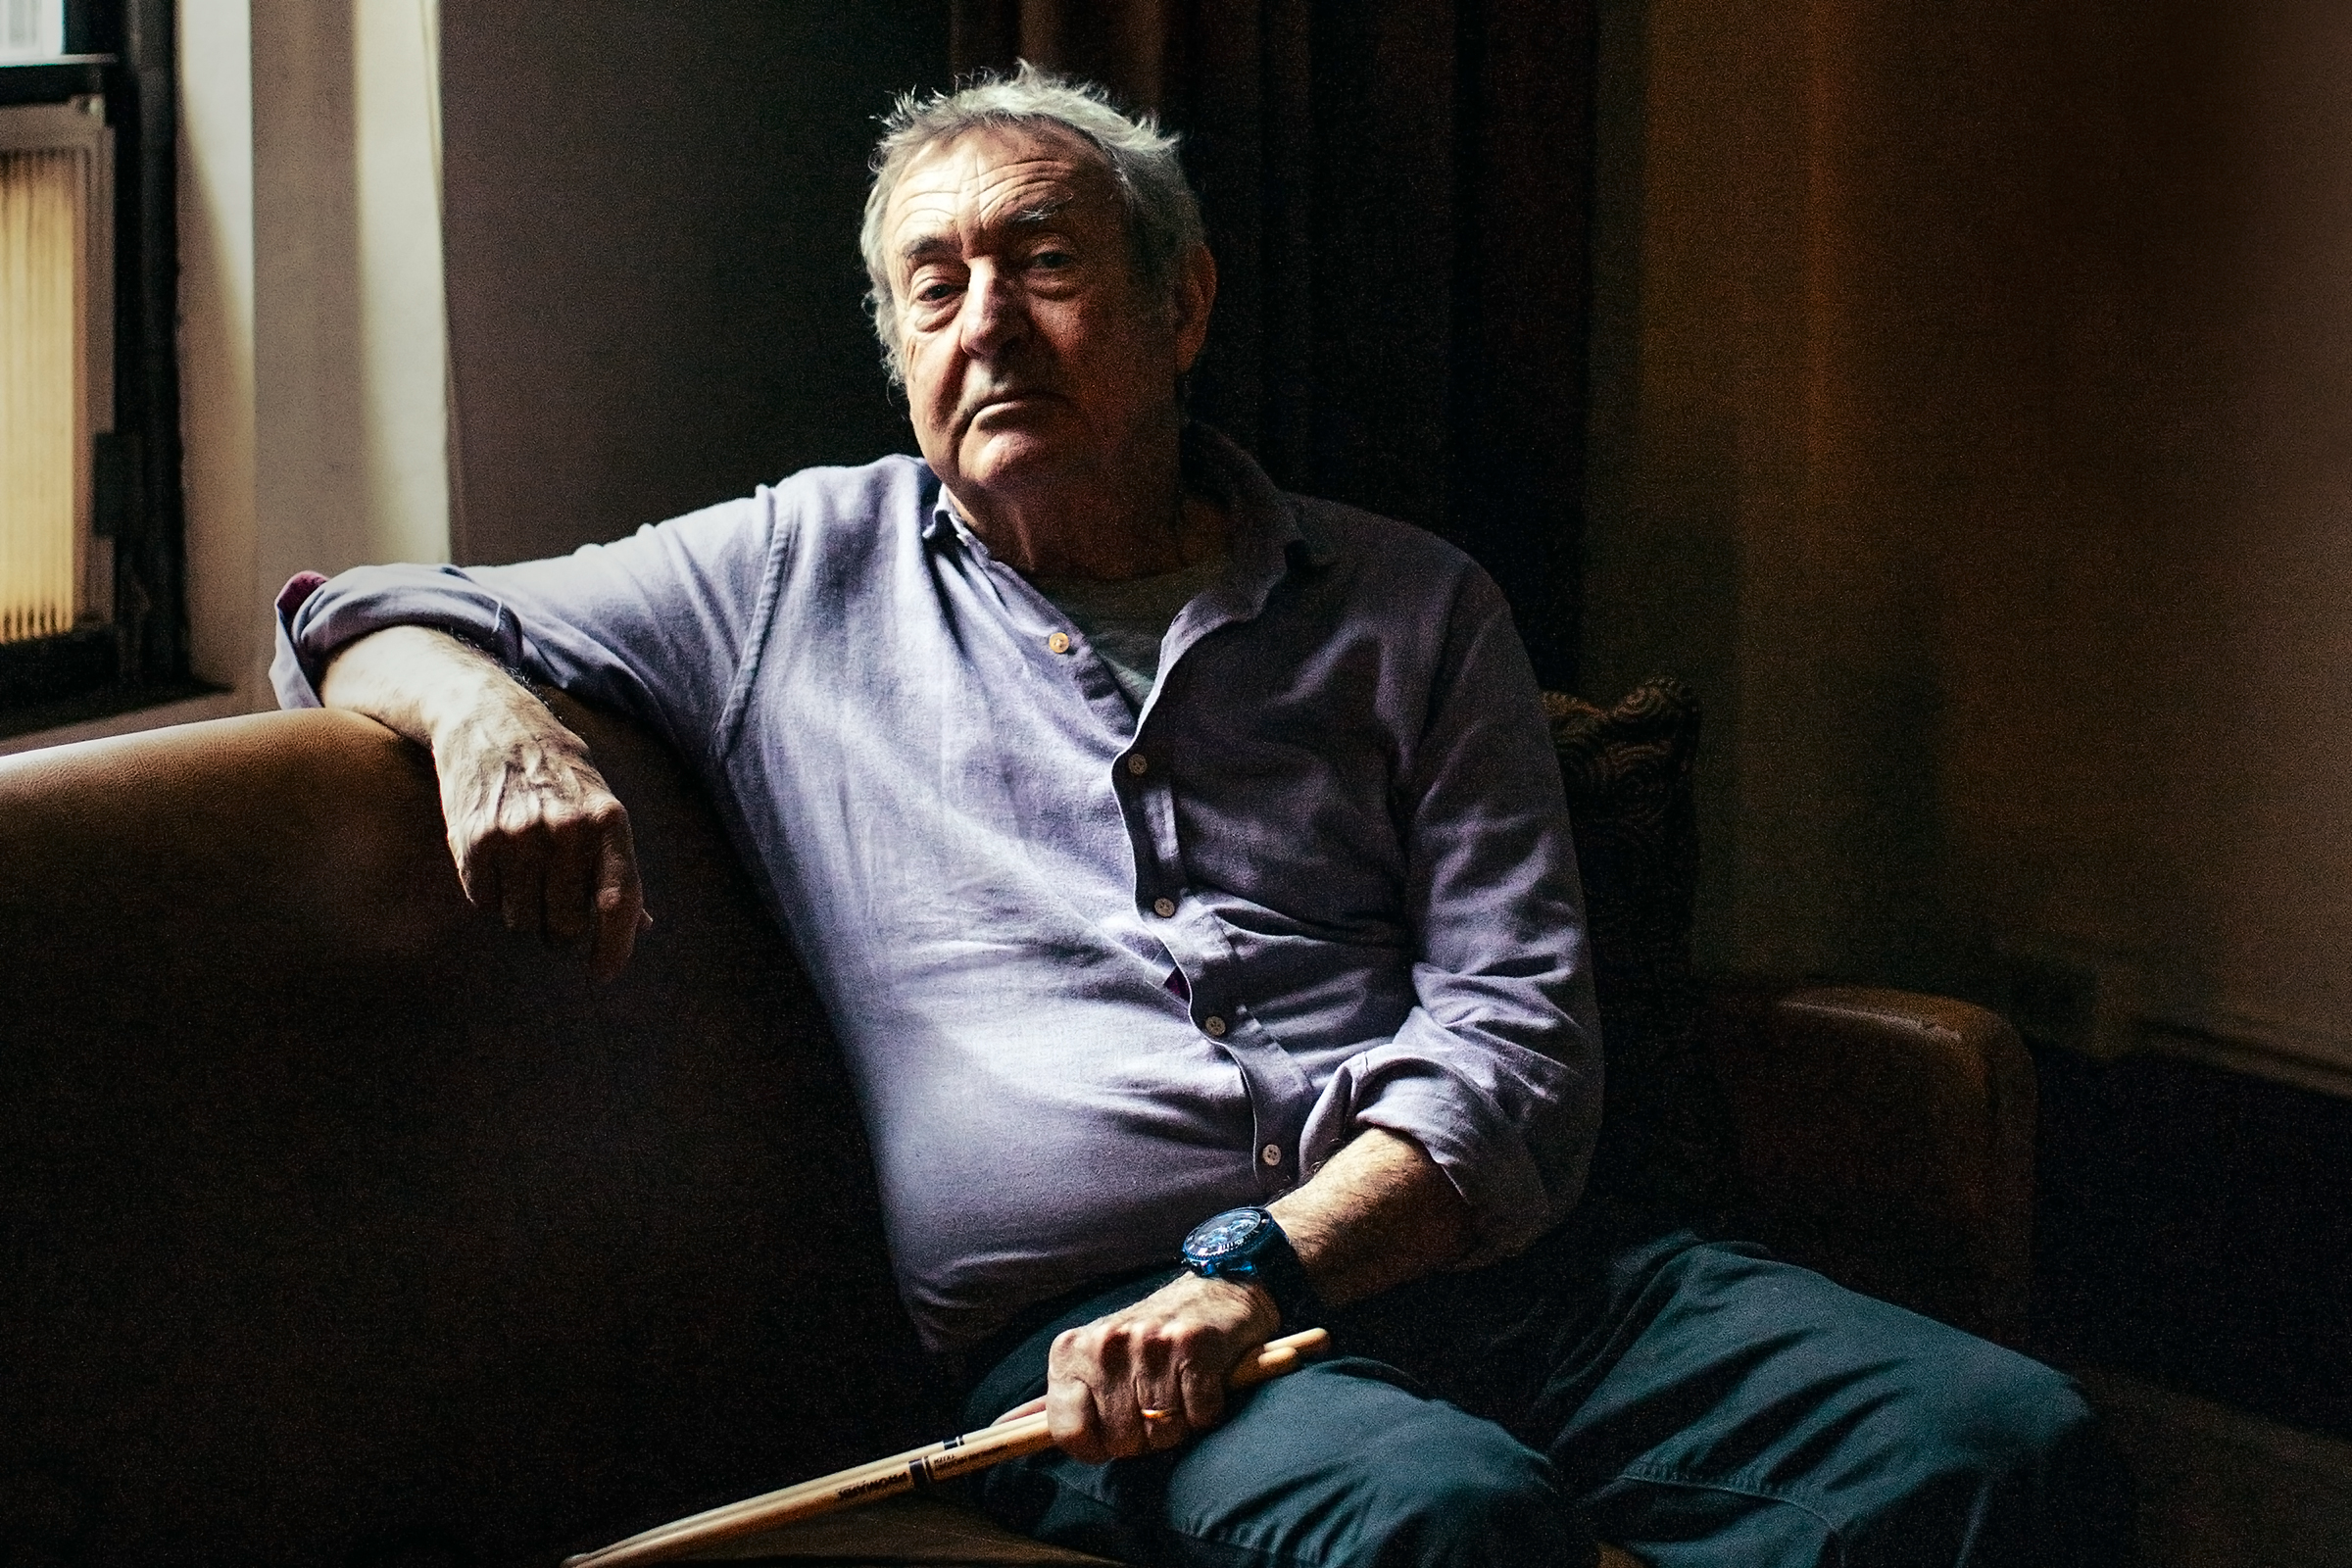 Nick Mason backstage at the Beacon Theater in New York, April 2019.